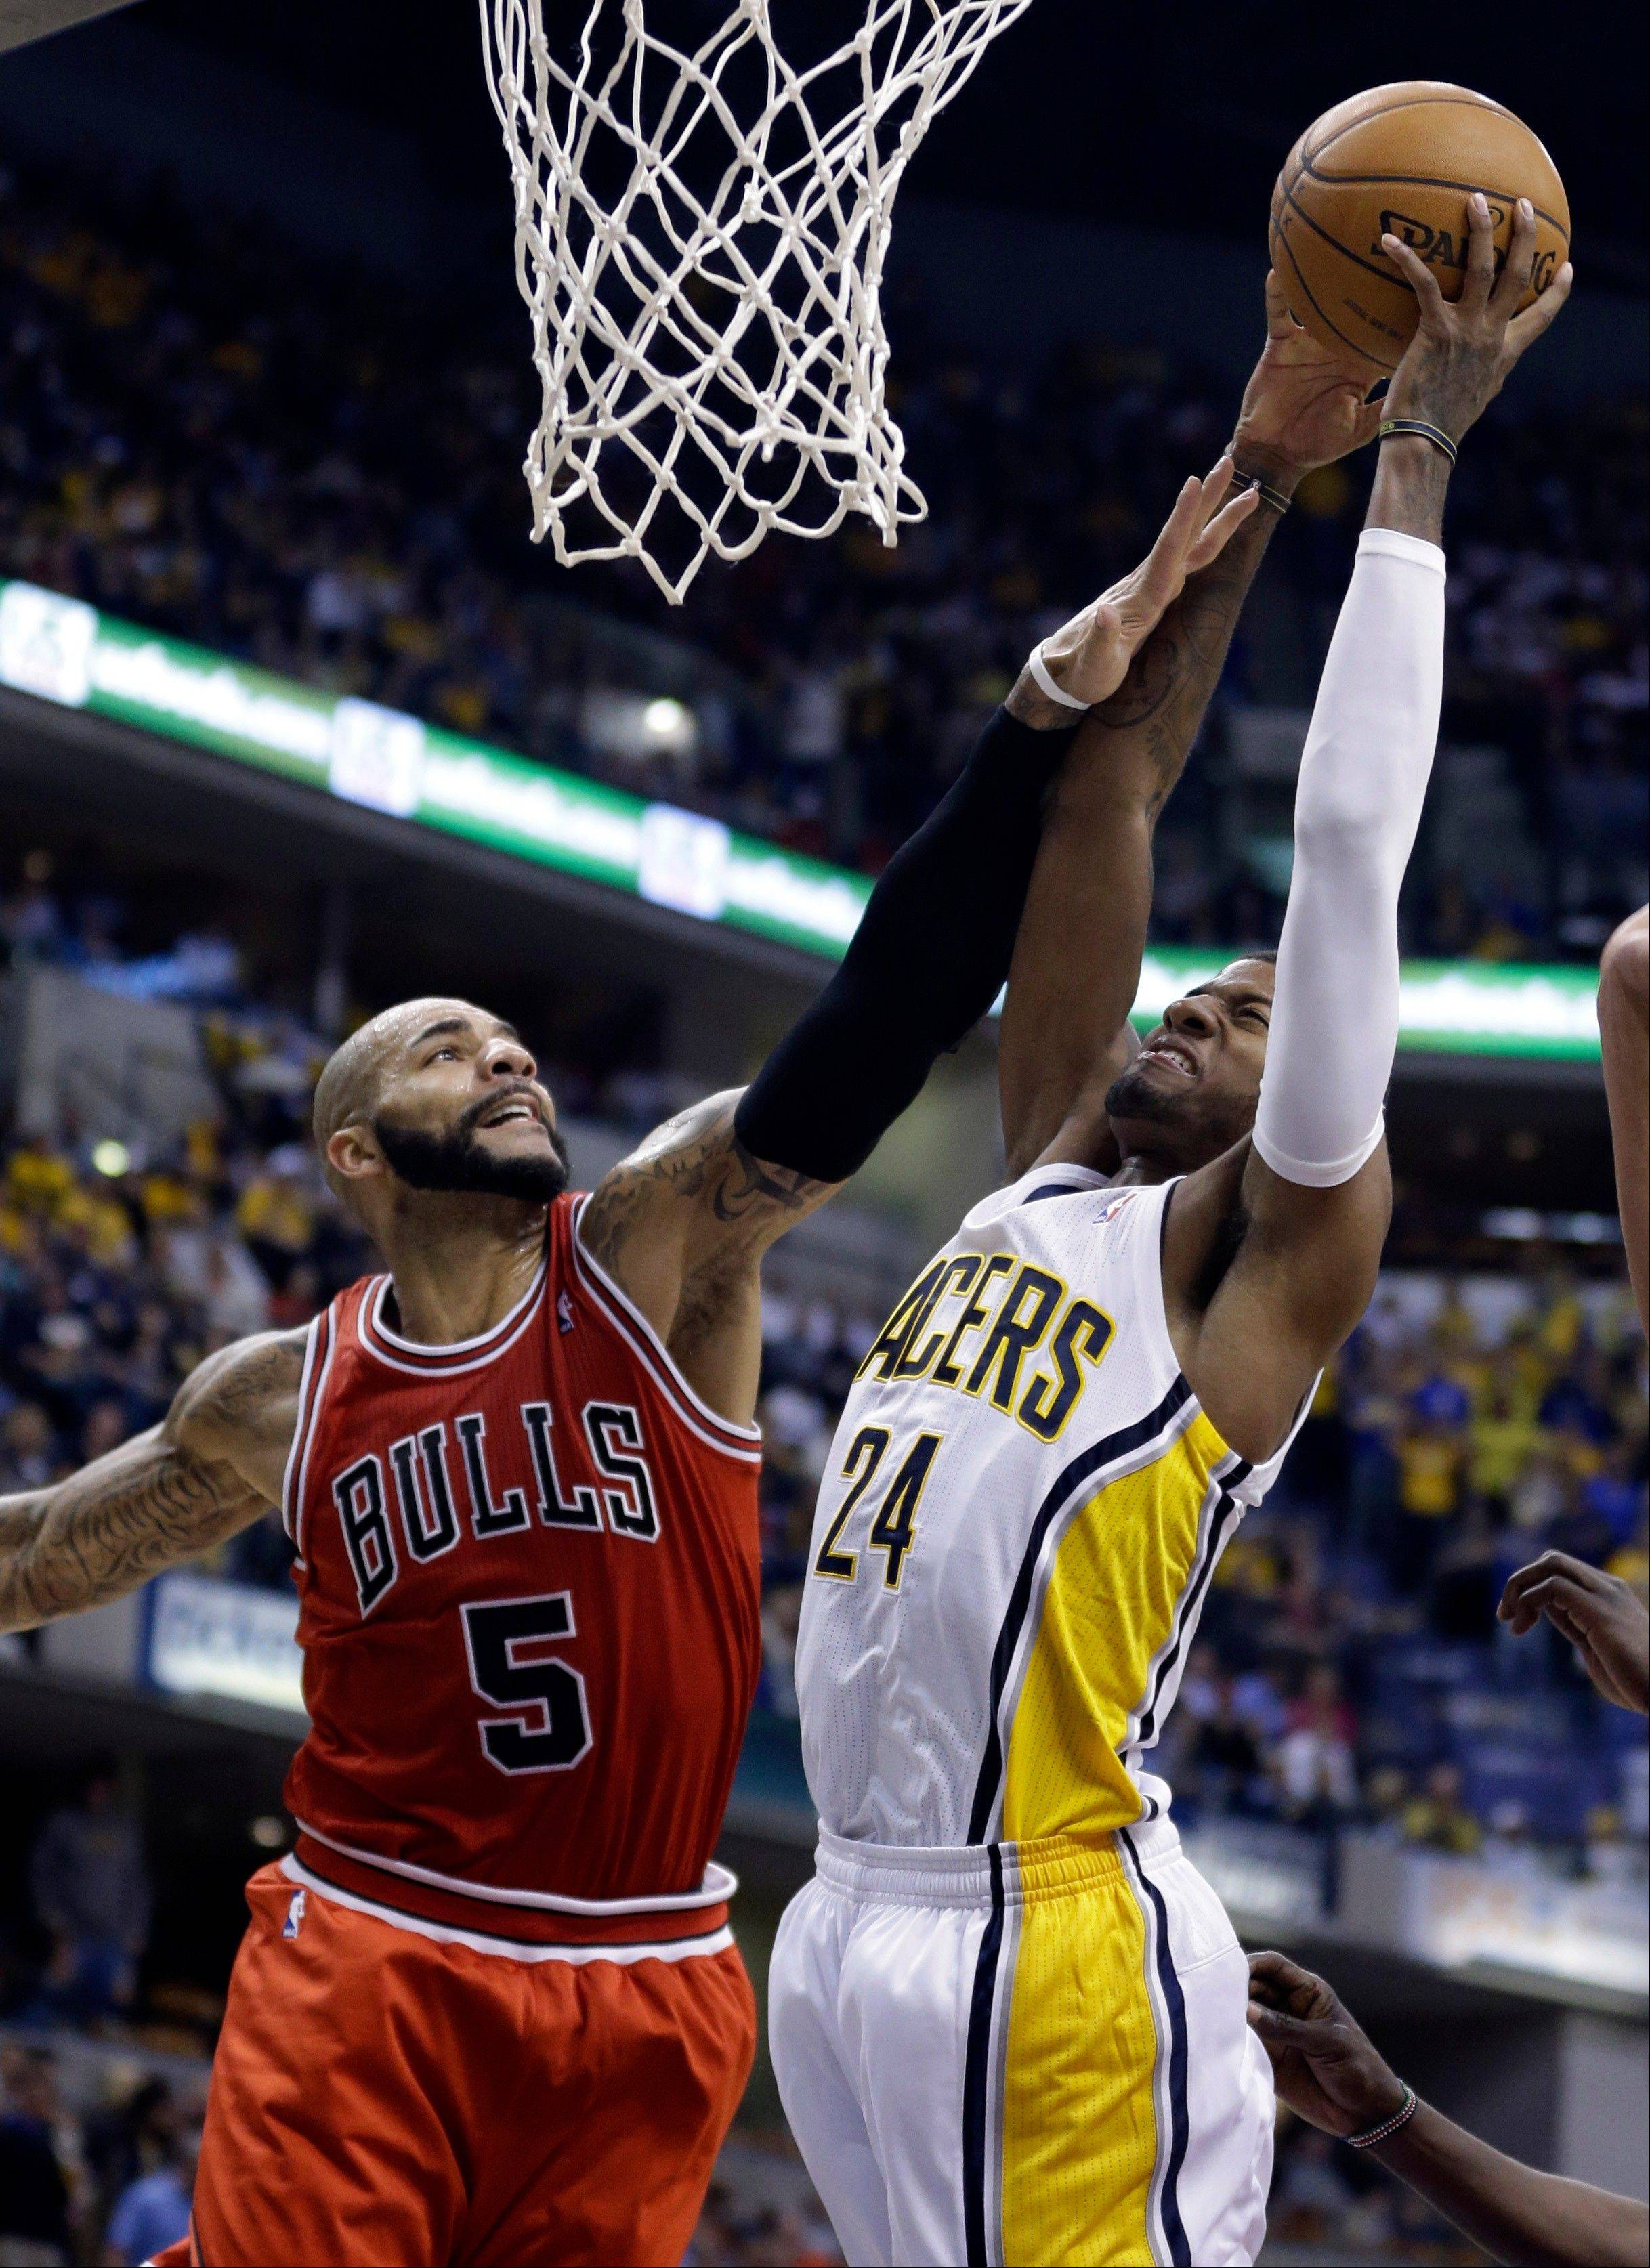 Bulls forward Carlos Boozer, left, fouls Indiana Pacers forward Paul George as he shoots in the second half of an NBA basketball game in Indianapolis, Wednesday, Nov. 6, 2013. The Pacers defeated the Bulls 97-80.